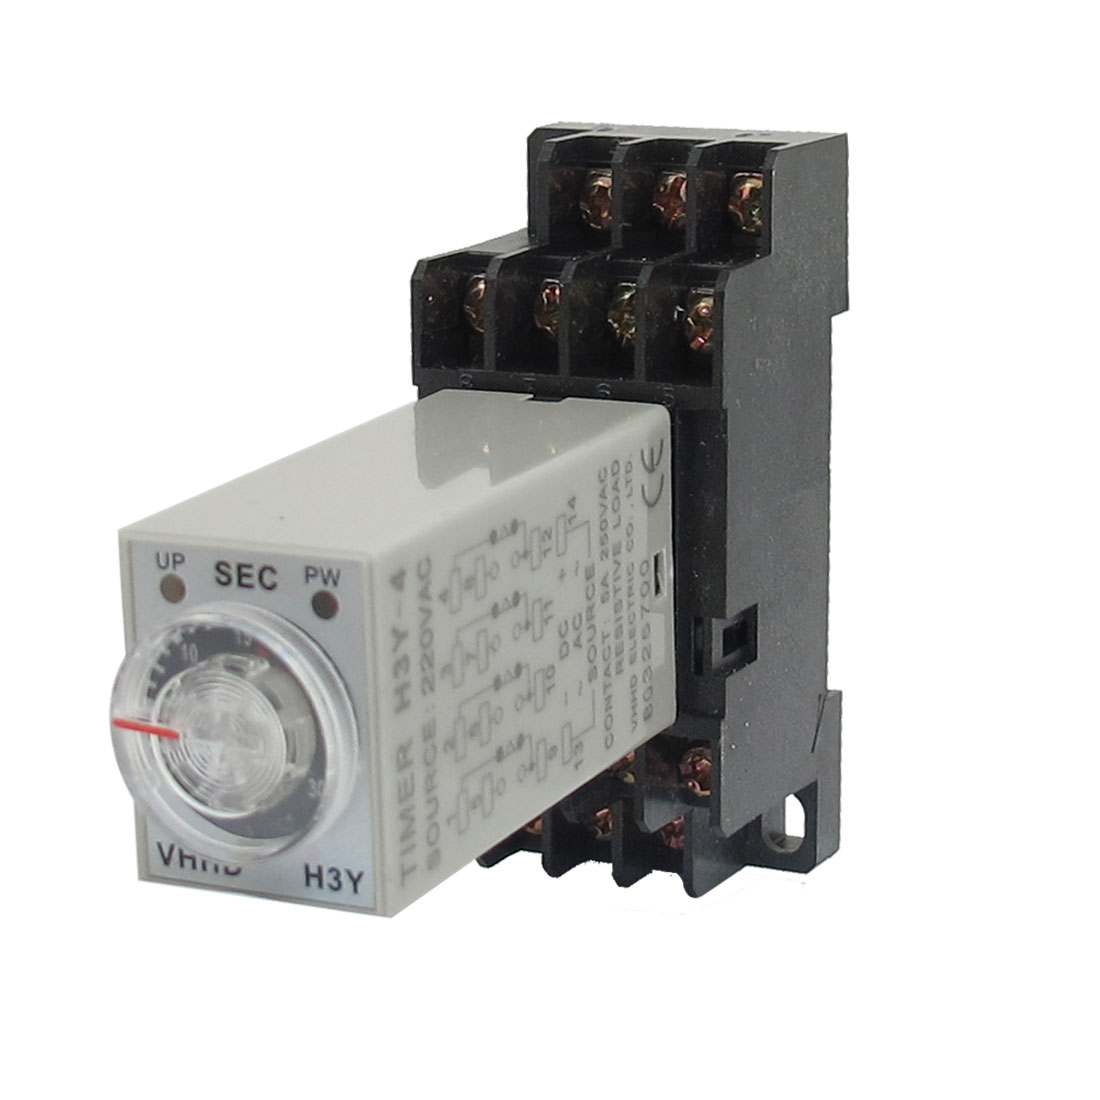 AC 220V H3Y-4 0-30S 4PDT 14 Pins Power on Time Delay Relay w Socket